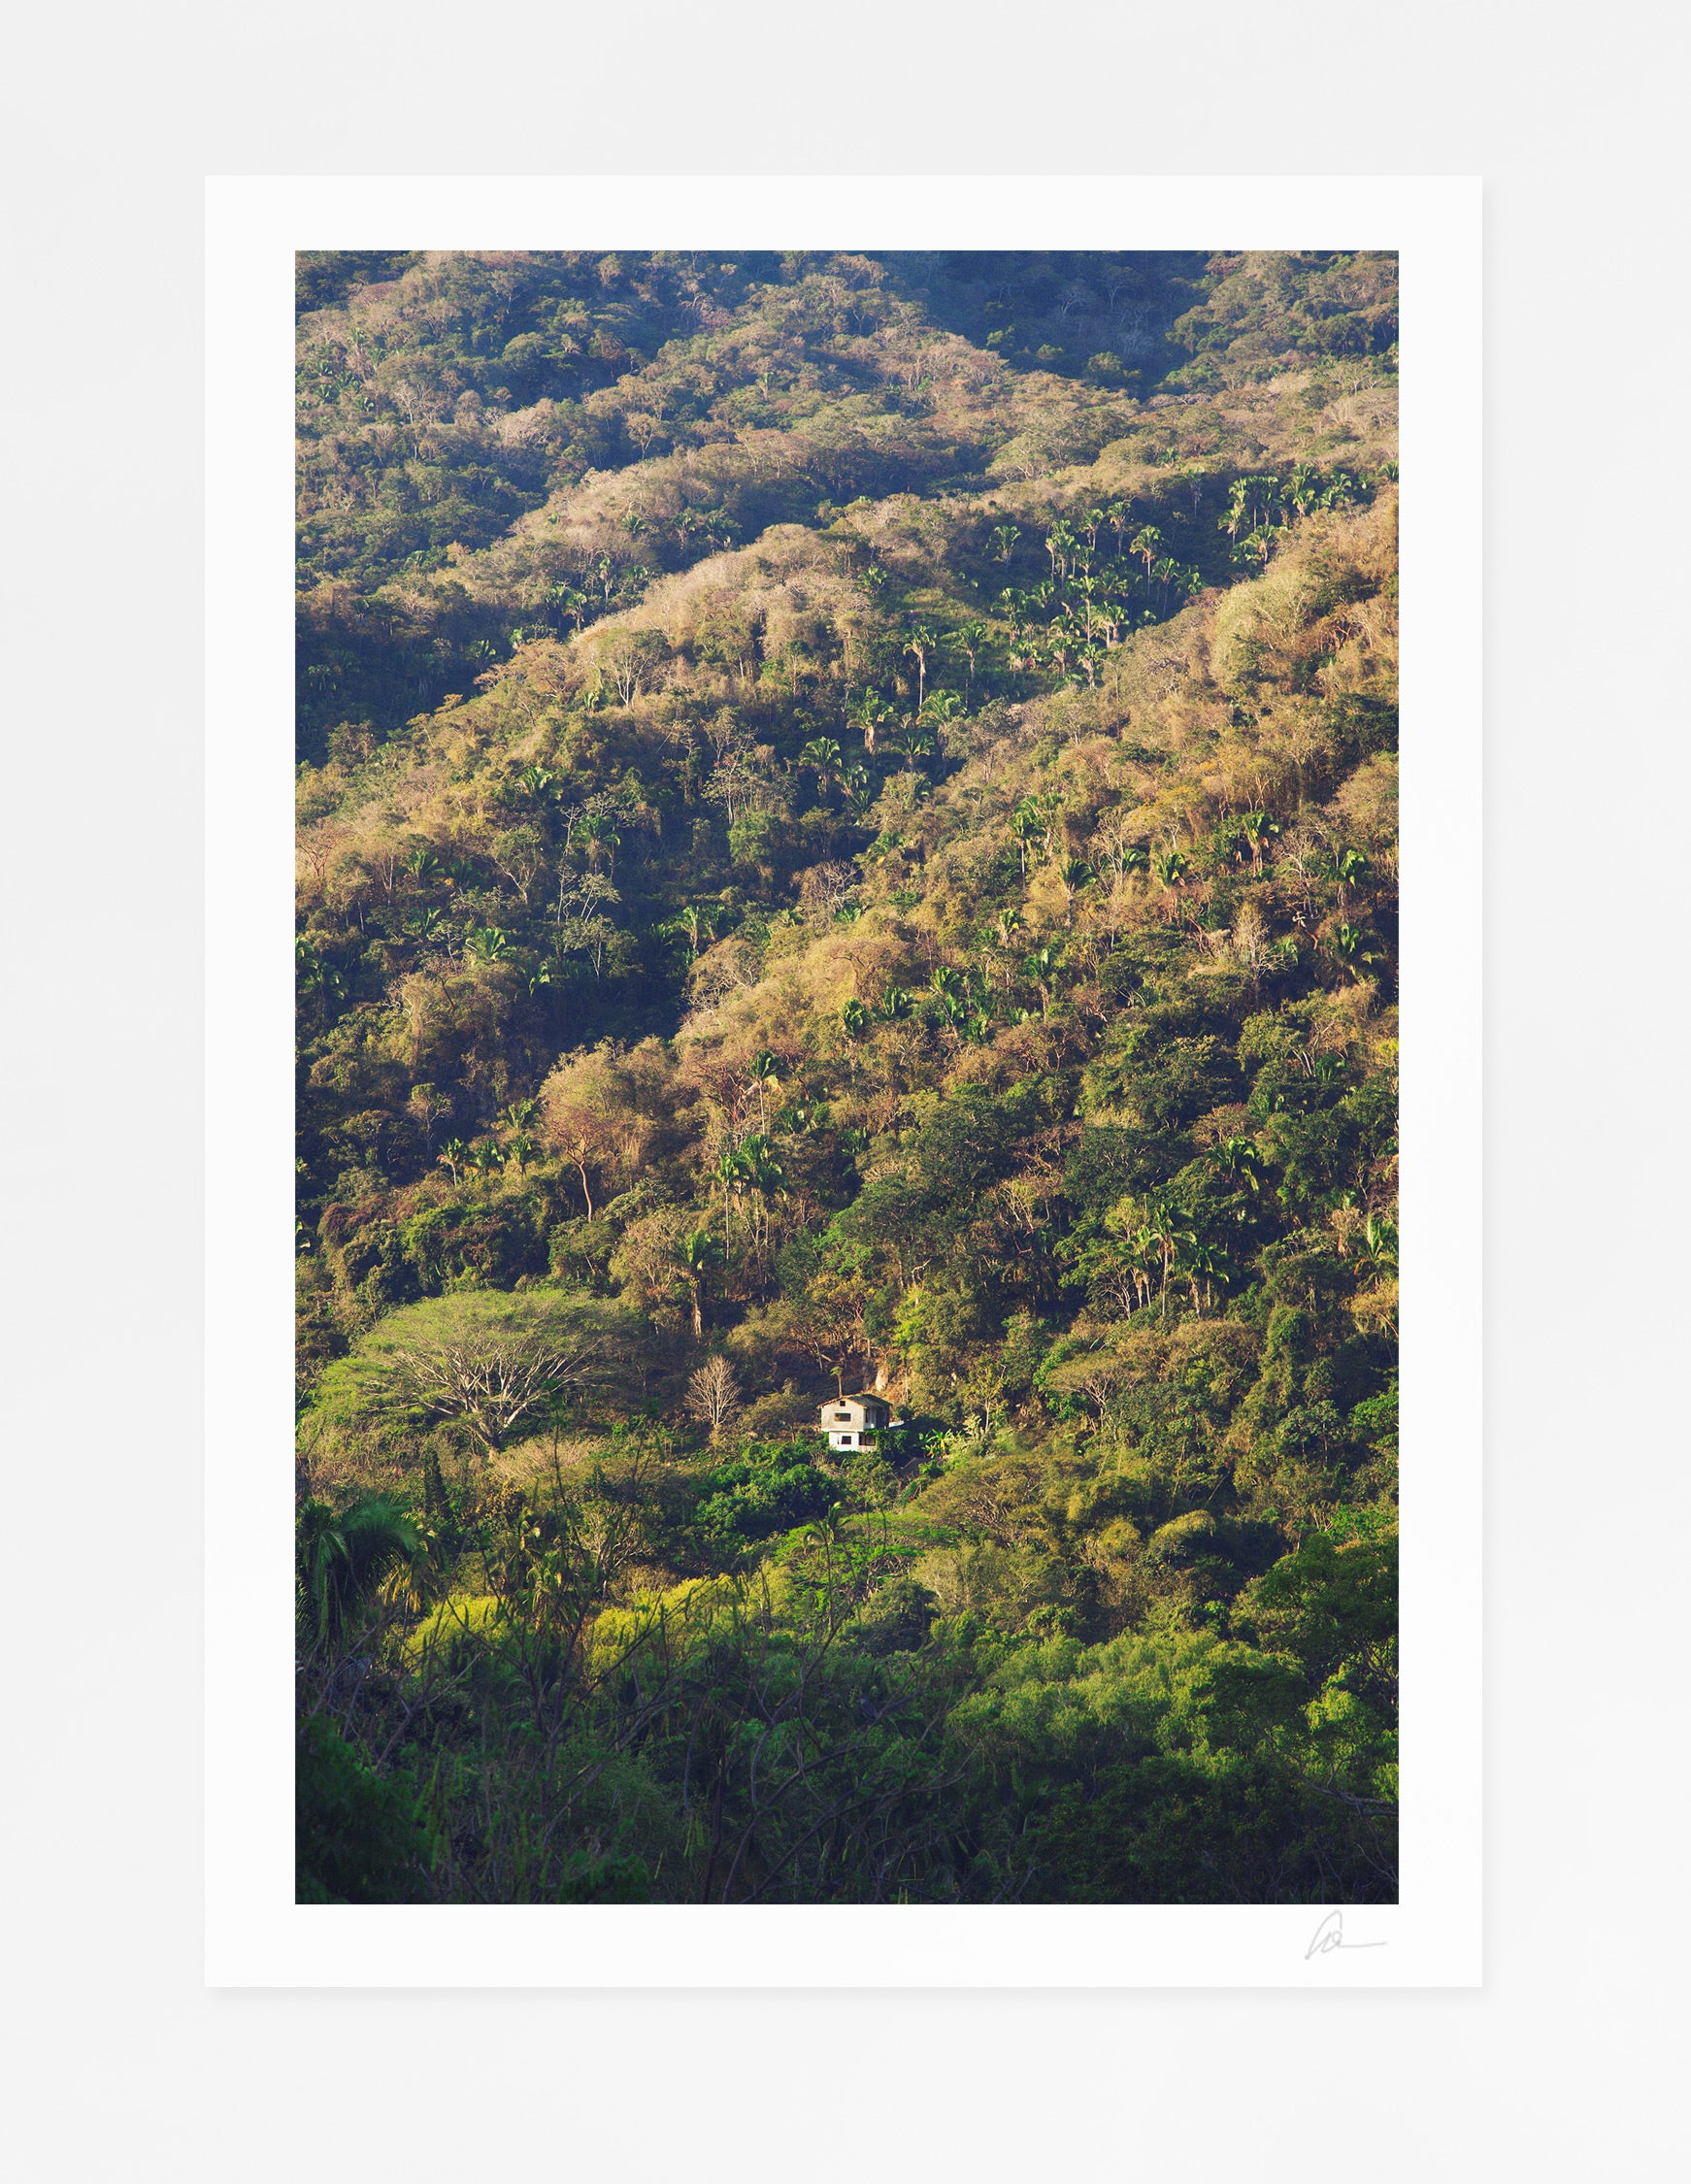 Yelapa Jungle